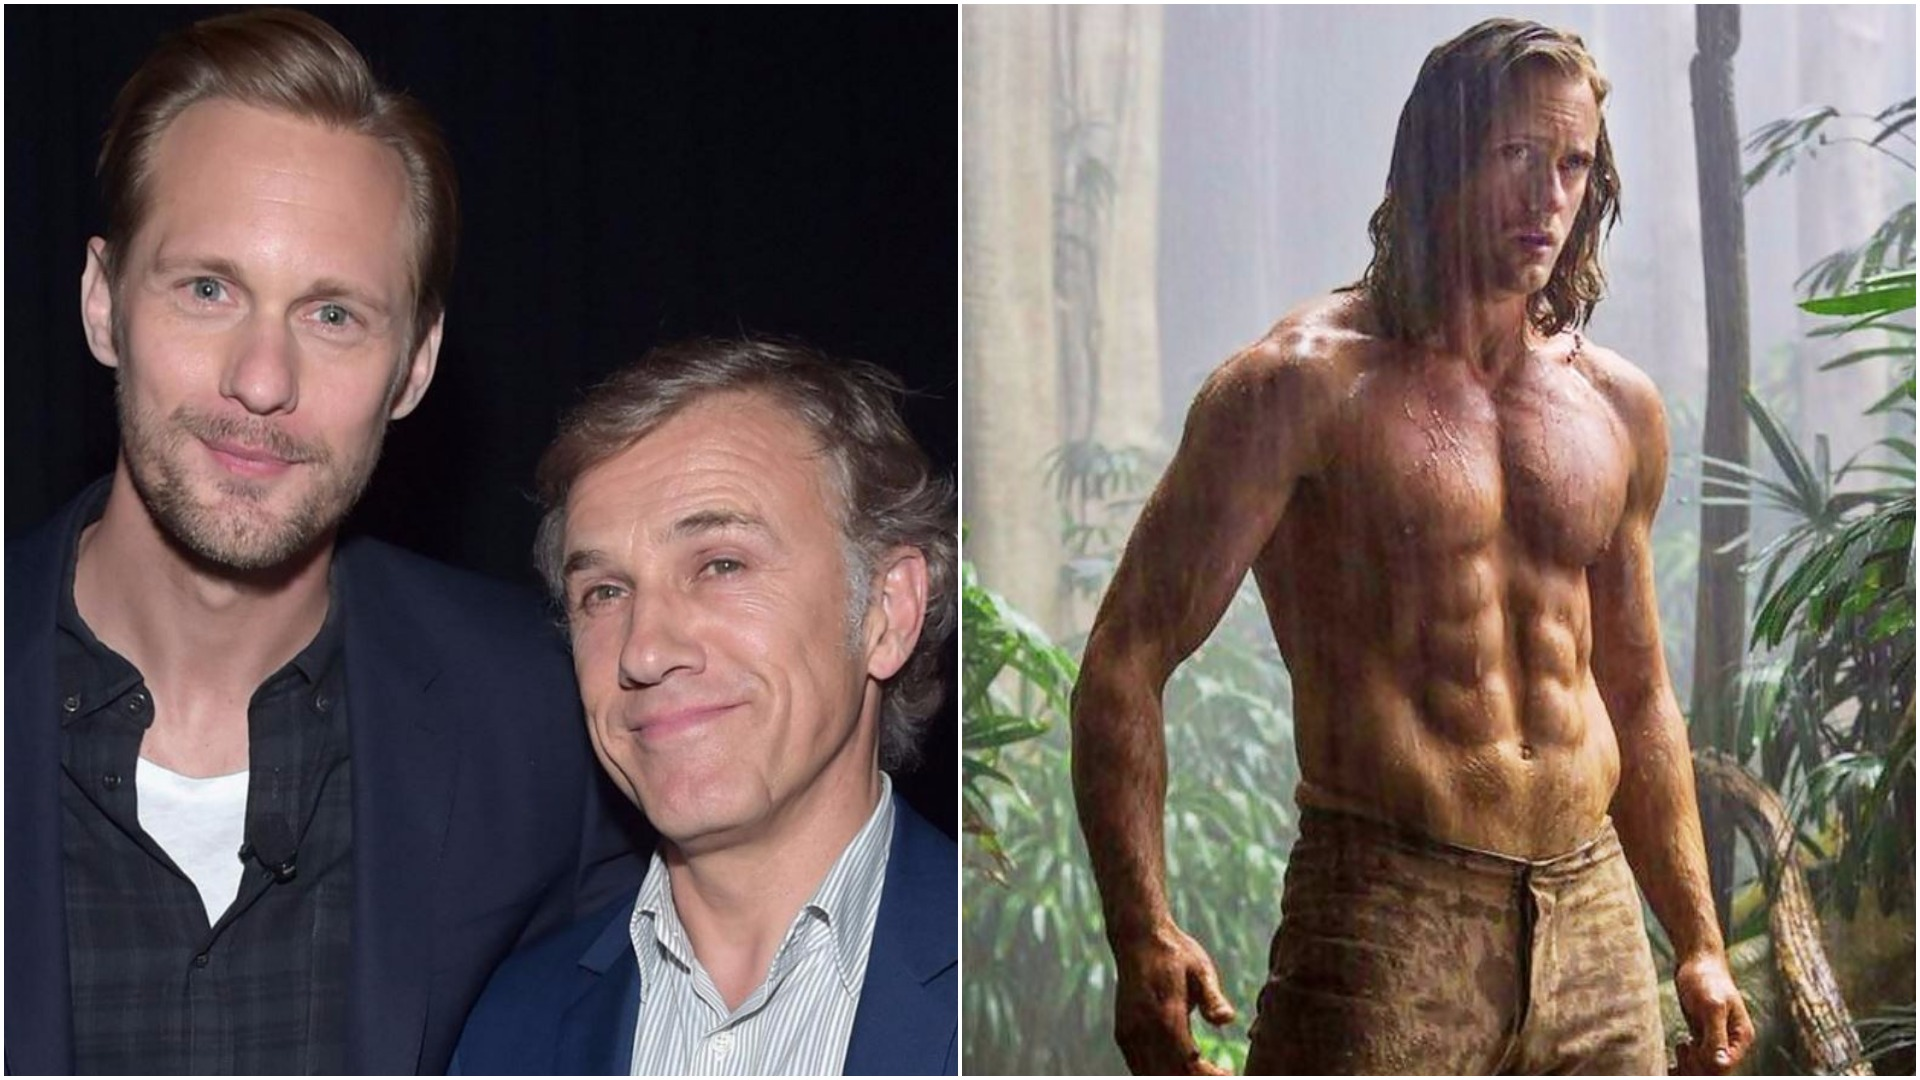 A gay kiss between Alexander Skarsgard and Christoph Waltz was cut from The Legend Of Tarzan